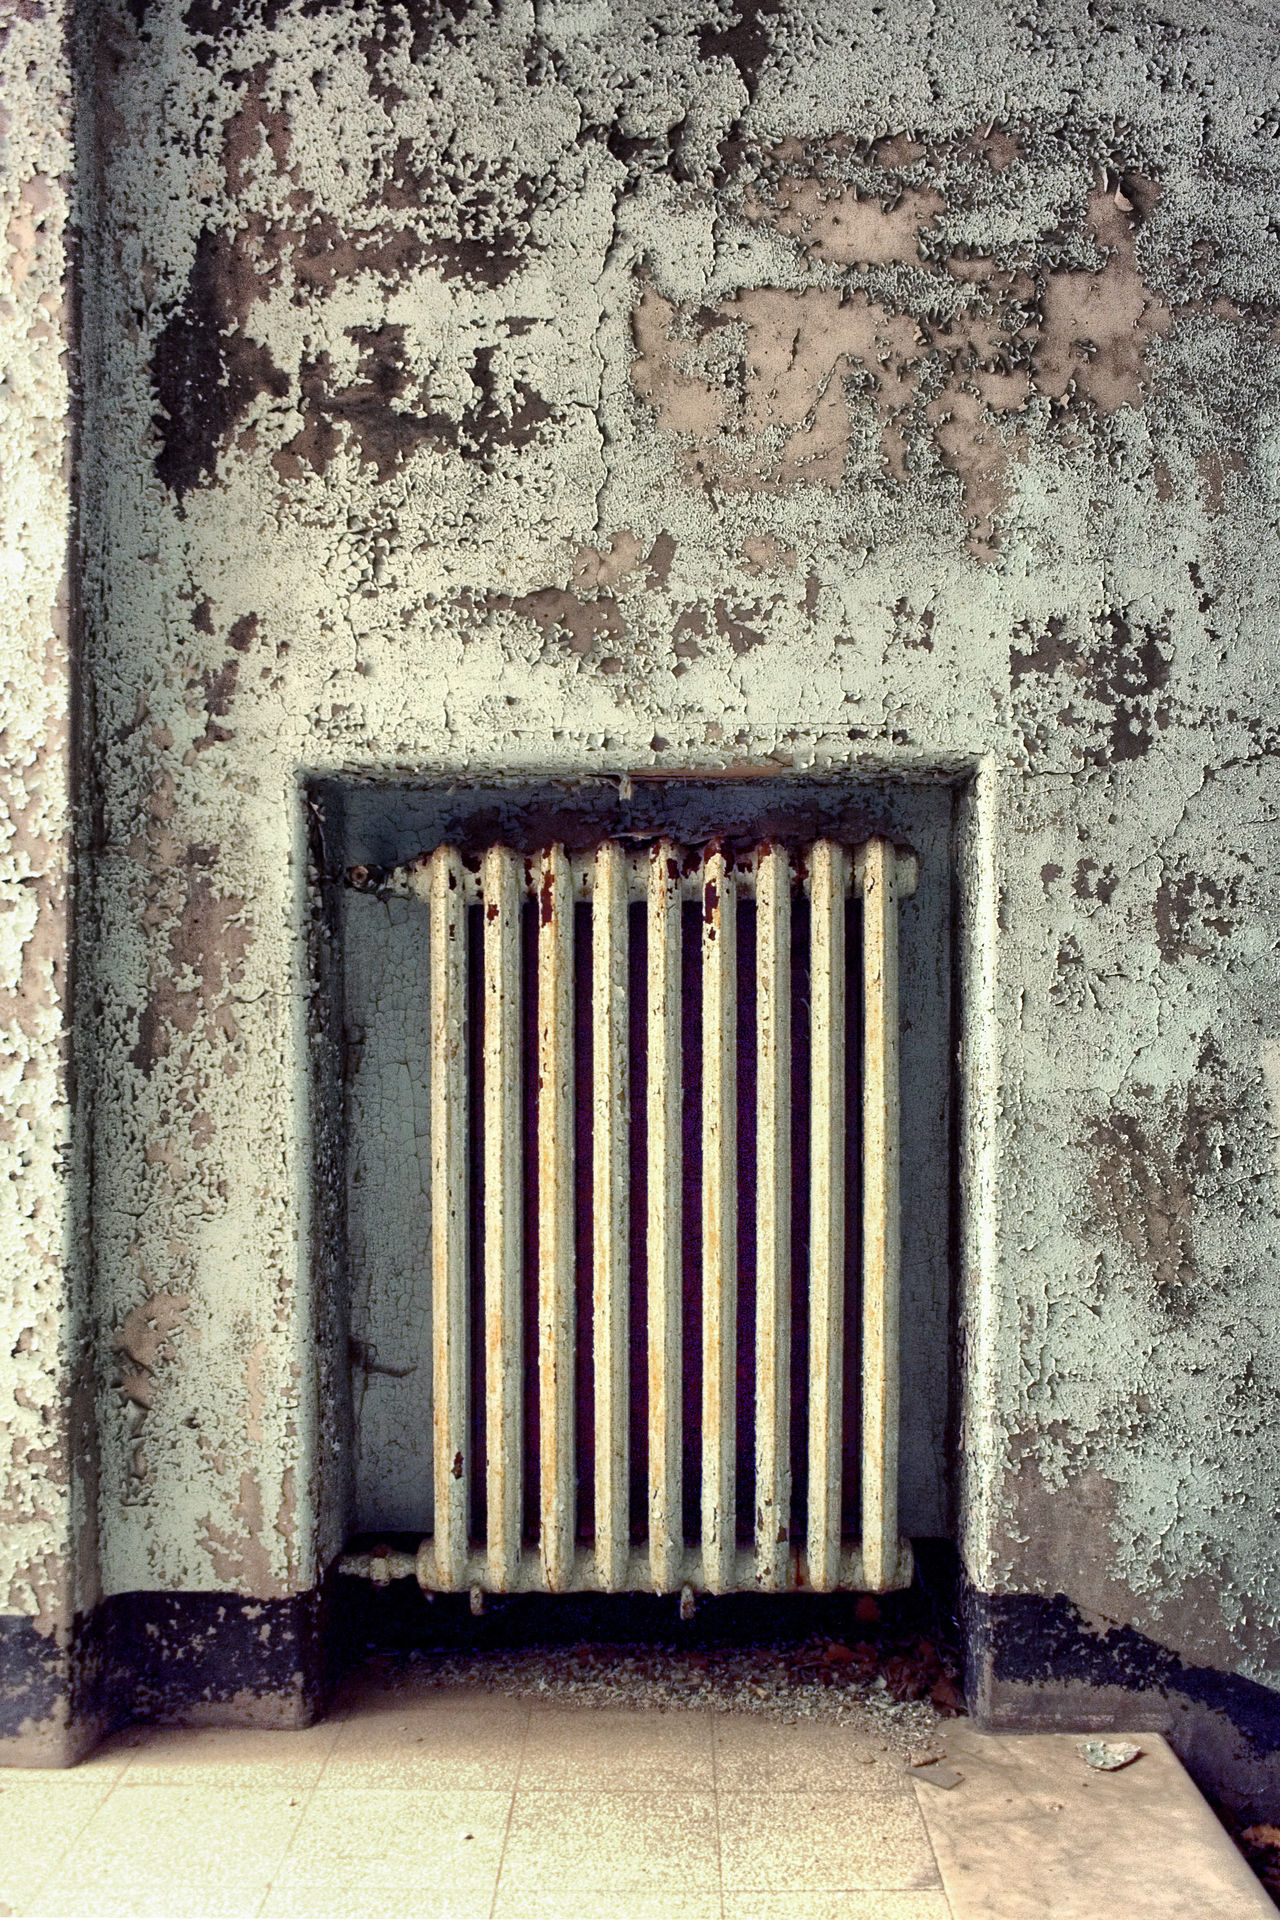 The ruined radiator Abandoned Architecture Built Structure Day No People Outdoors Radiator Rust Rusty